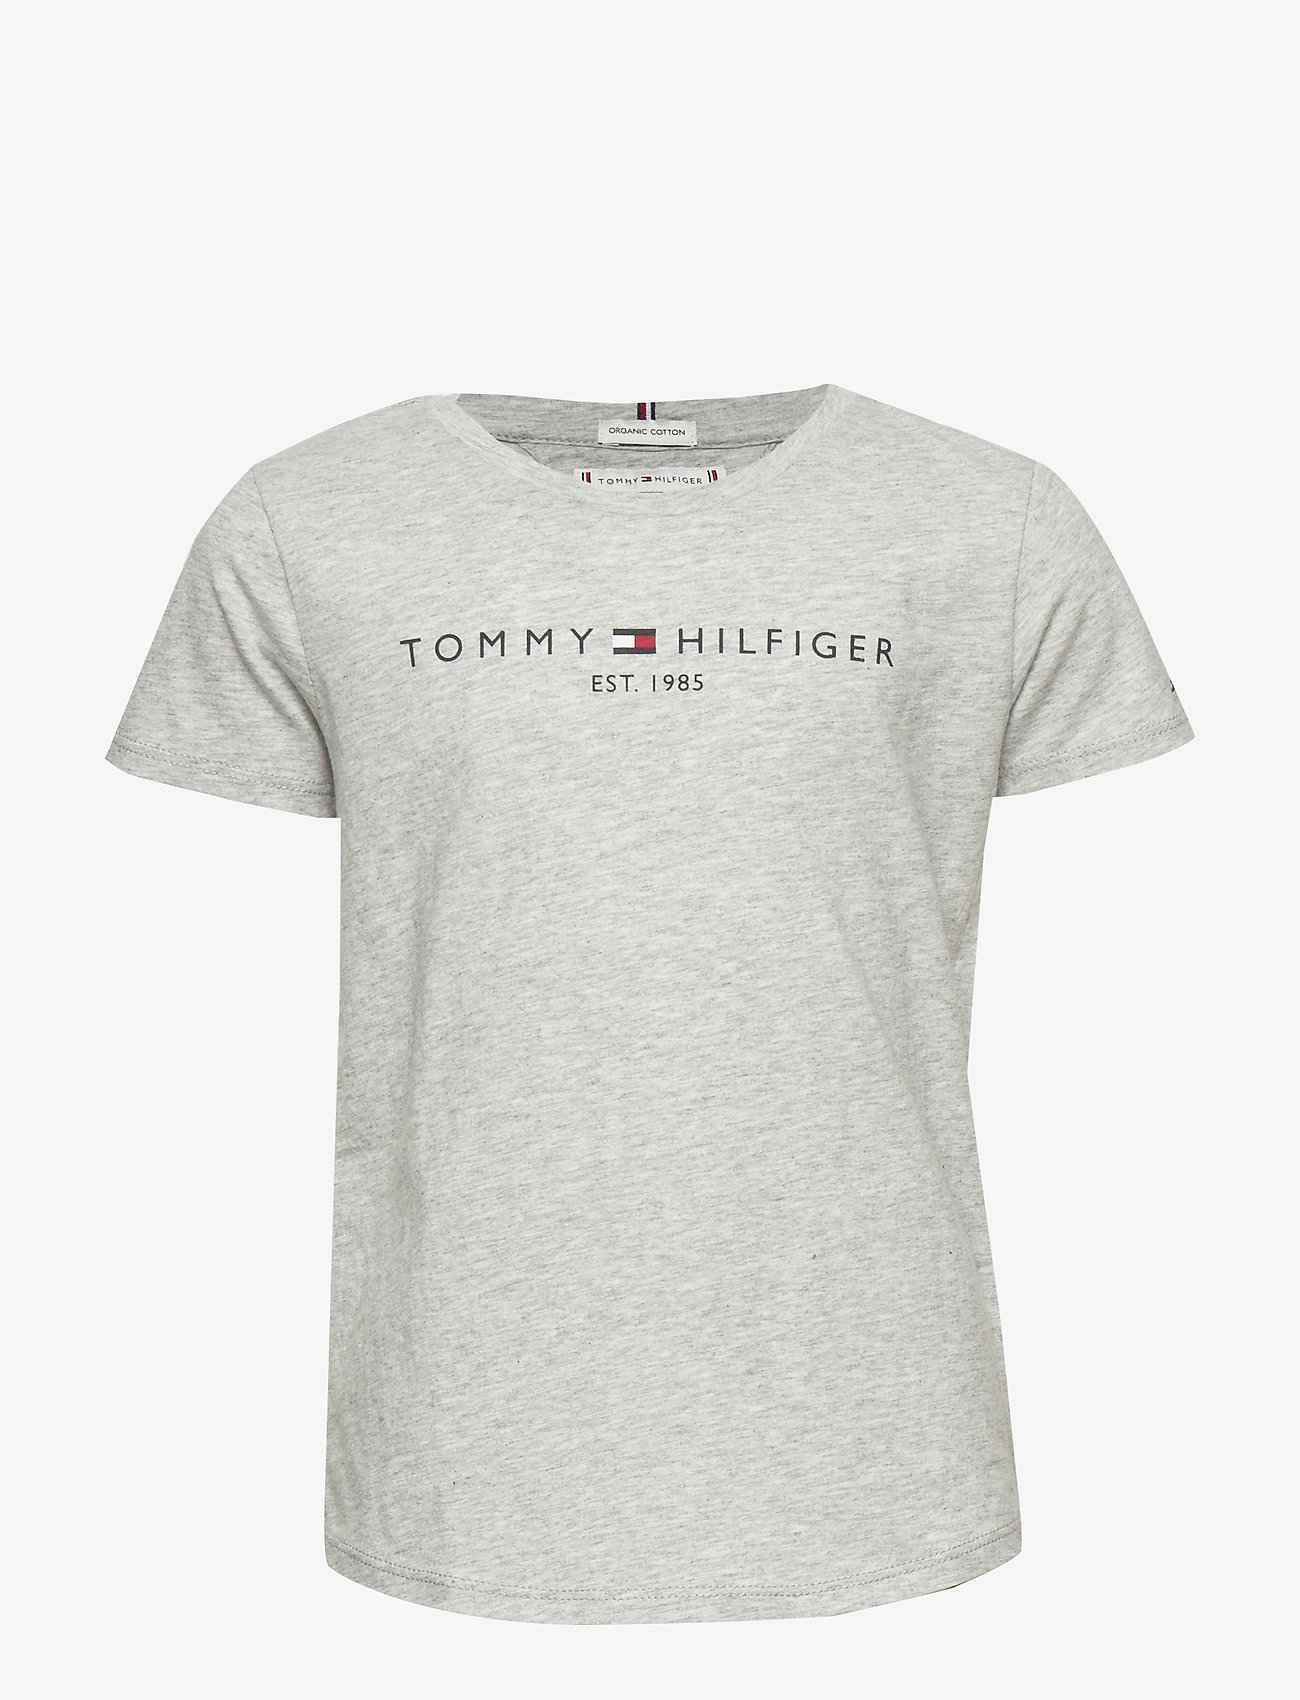 Tommy Hilfiger - ESSENTIAL  TEE S/S - short-sleeved - light grey heather